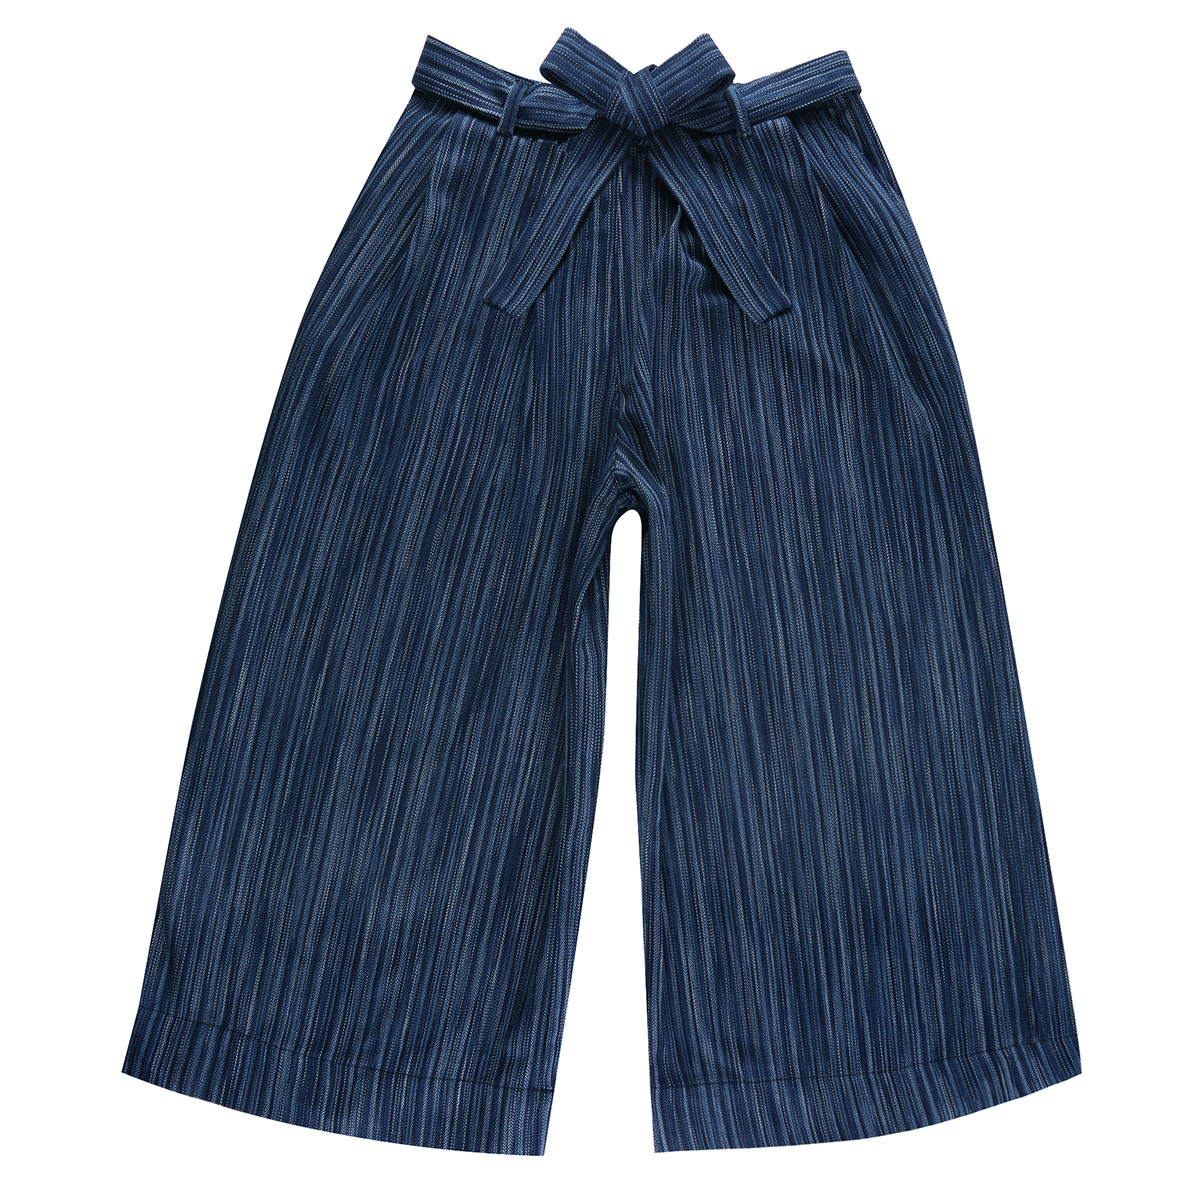 INDIGO STRIPES - Wide Pants